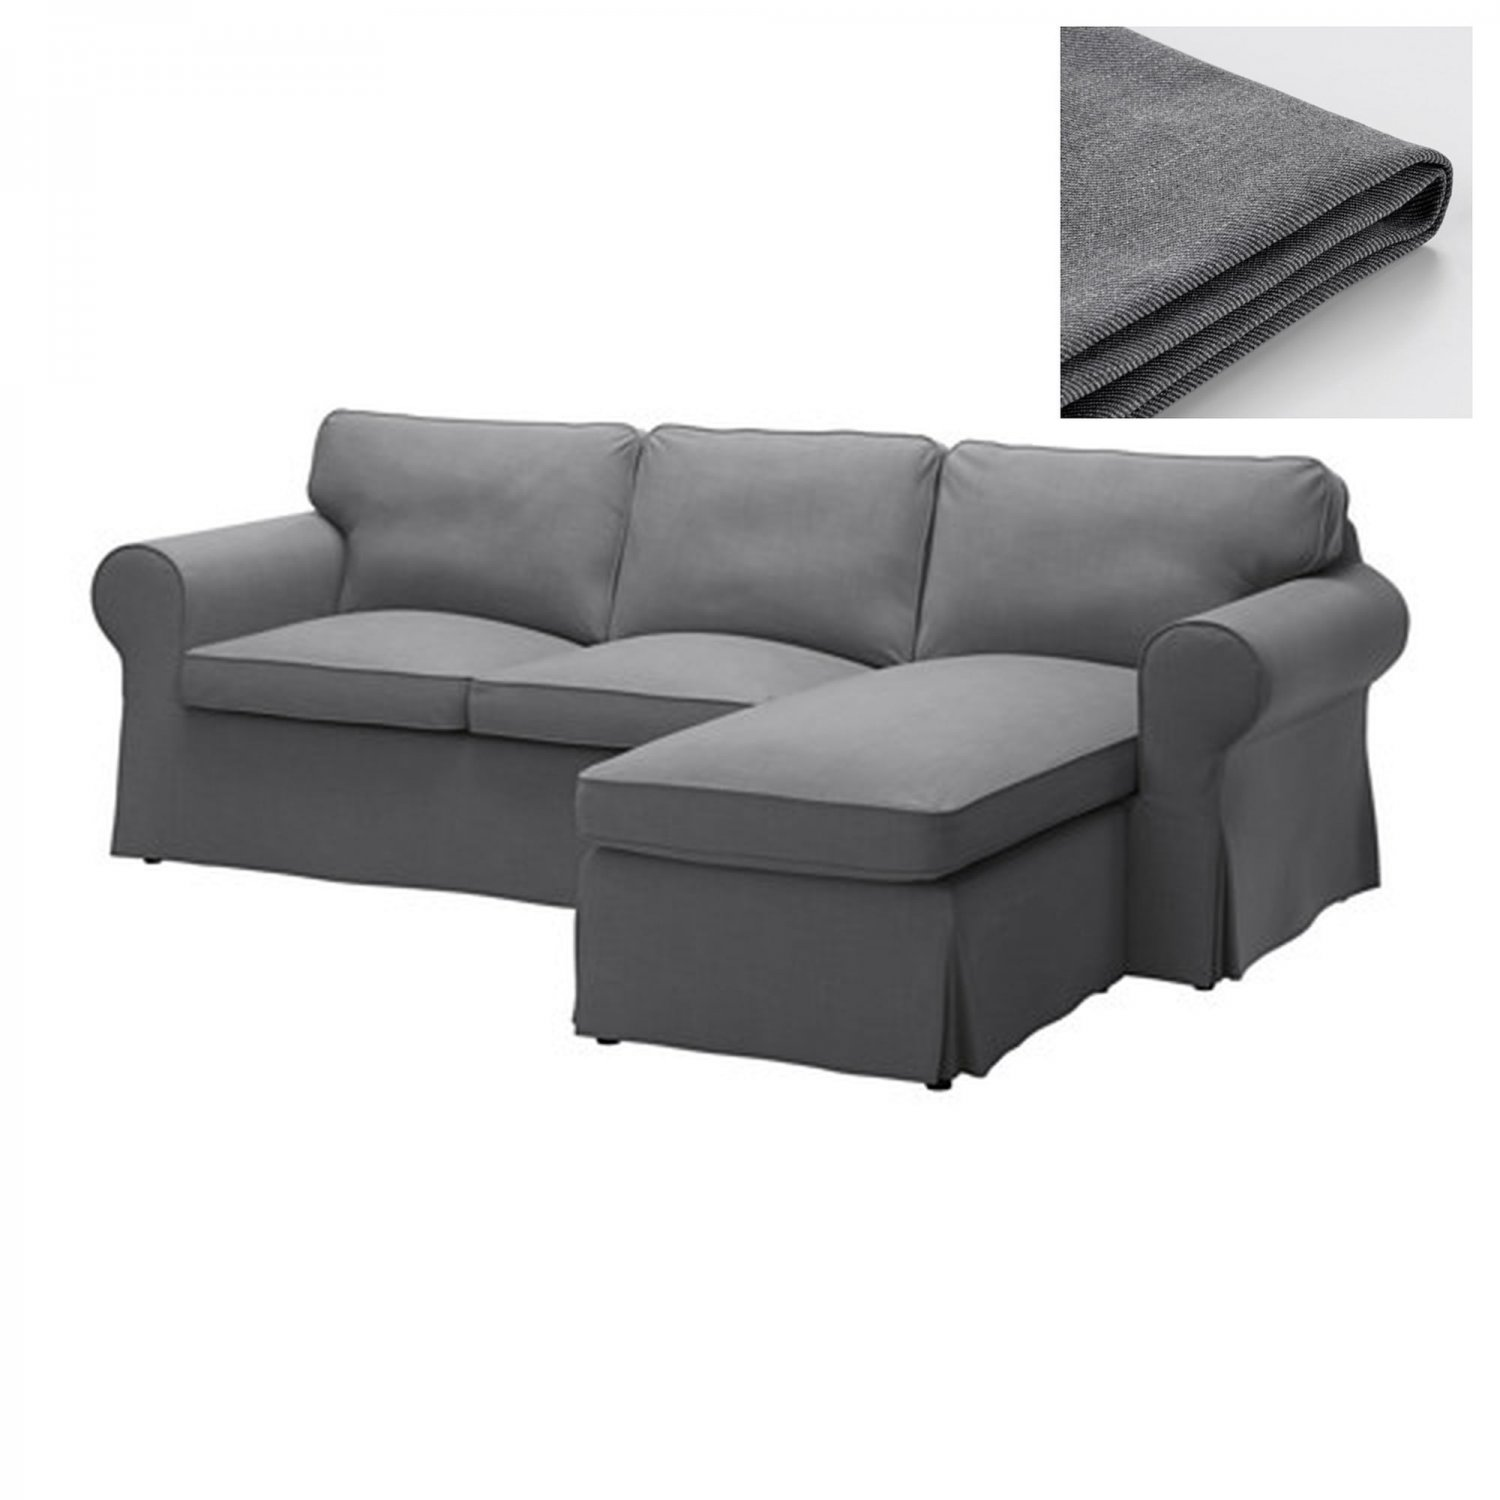 Ikea Loveseat Ikea Ektorp Loveseat Sofa W Chaise Slipcover 3 Seat Sectional Sofa Cover Nordvalla Dark Gray Grey